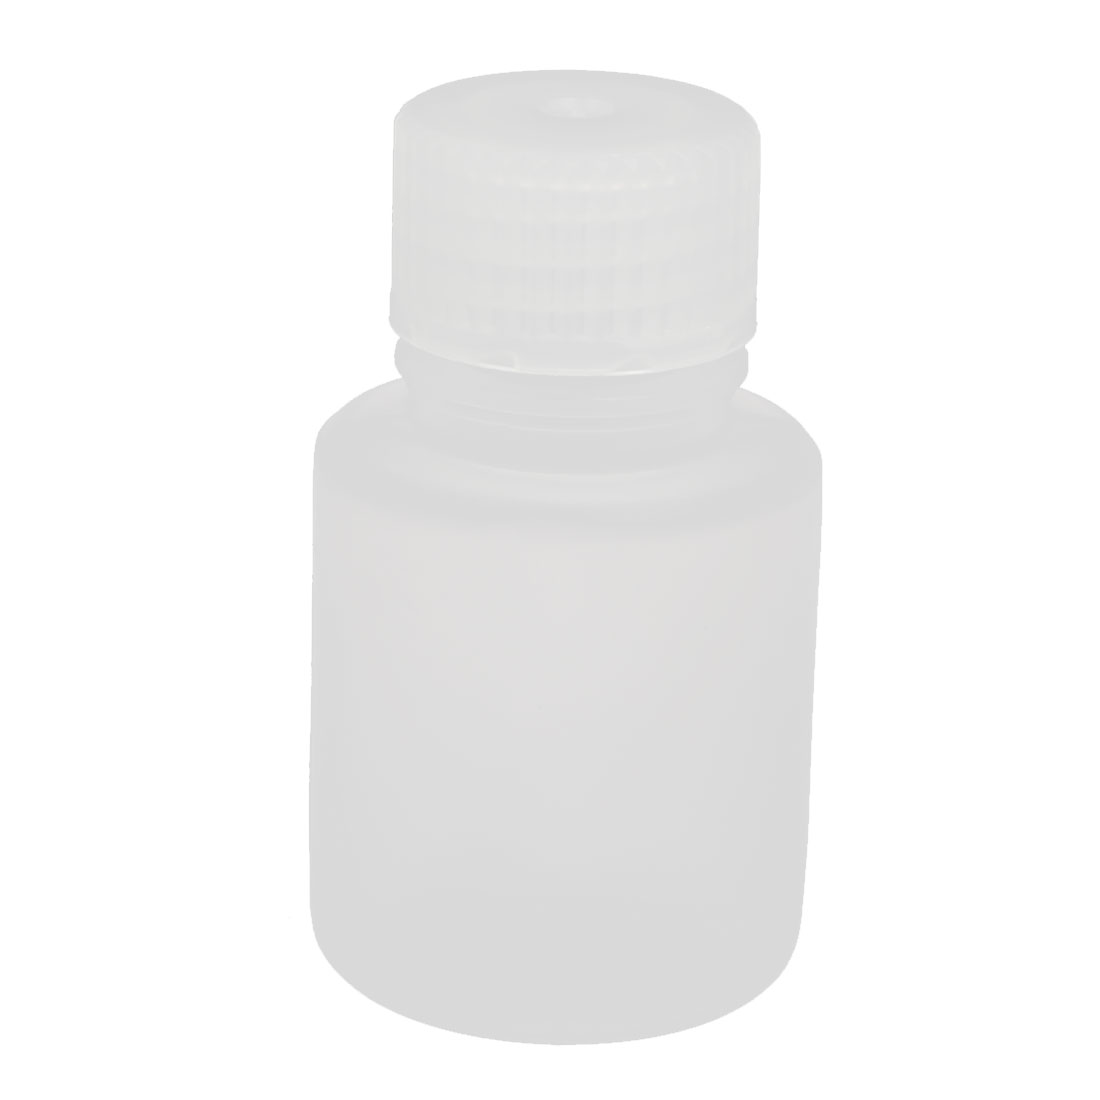 30ml PP Plastic Round Shaped Narrow Mouth Bottle Clear